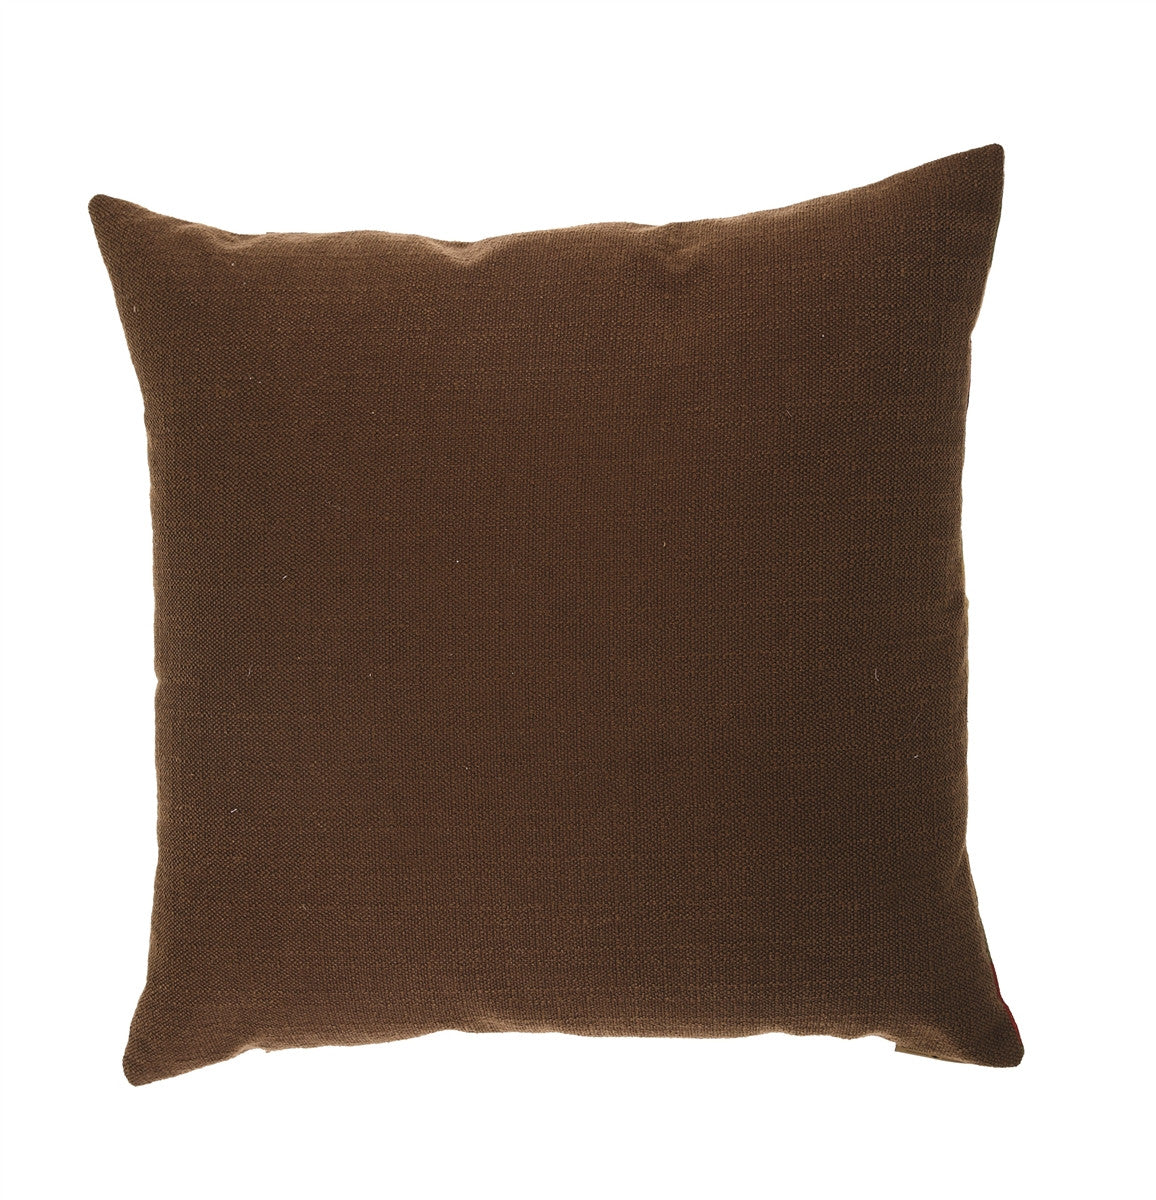 DV Kap Home - Hollywood Toss Pillow